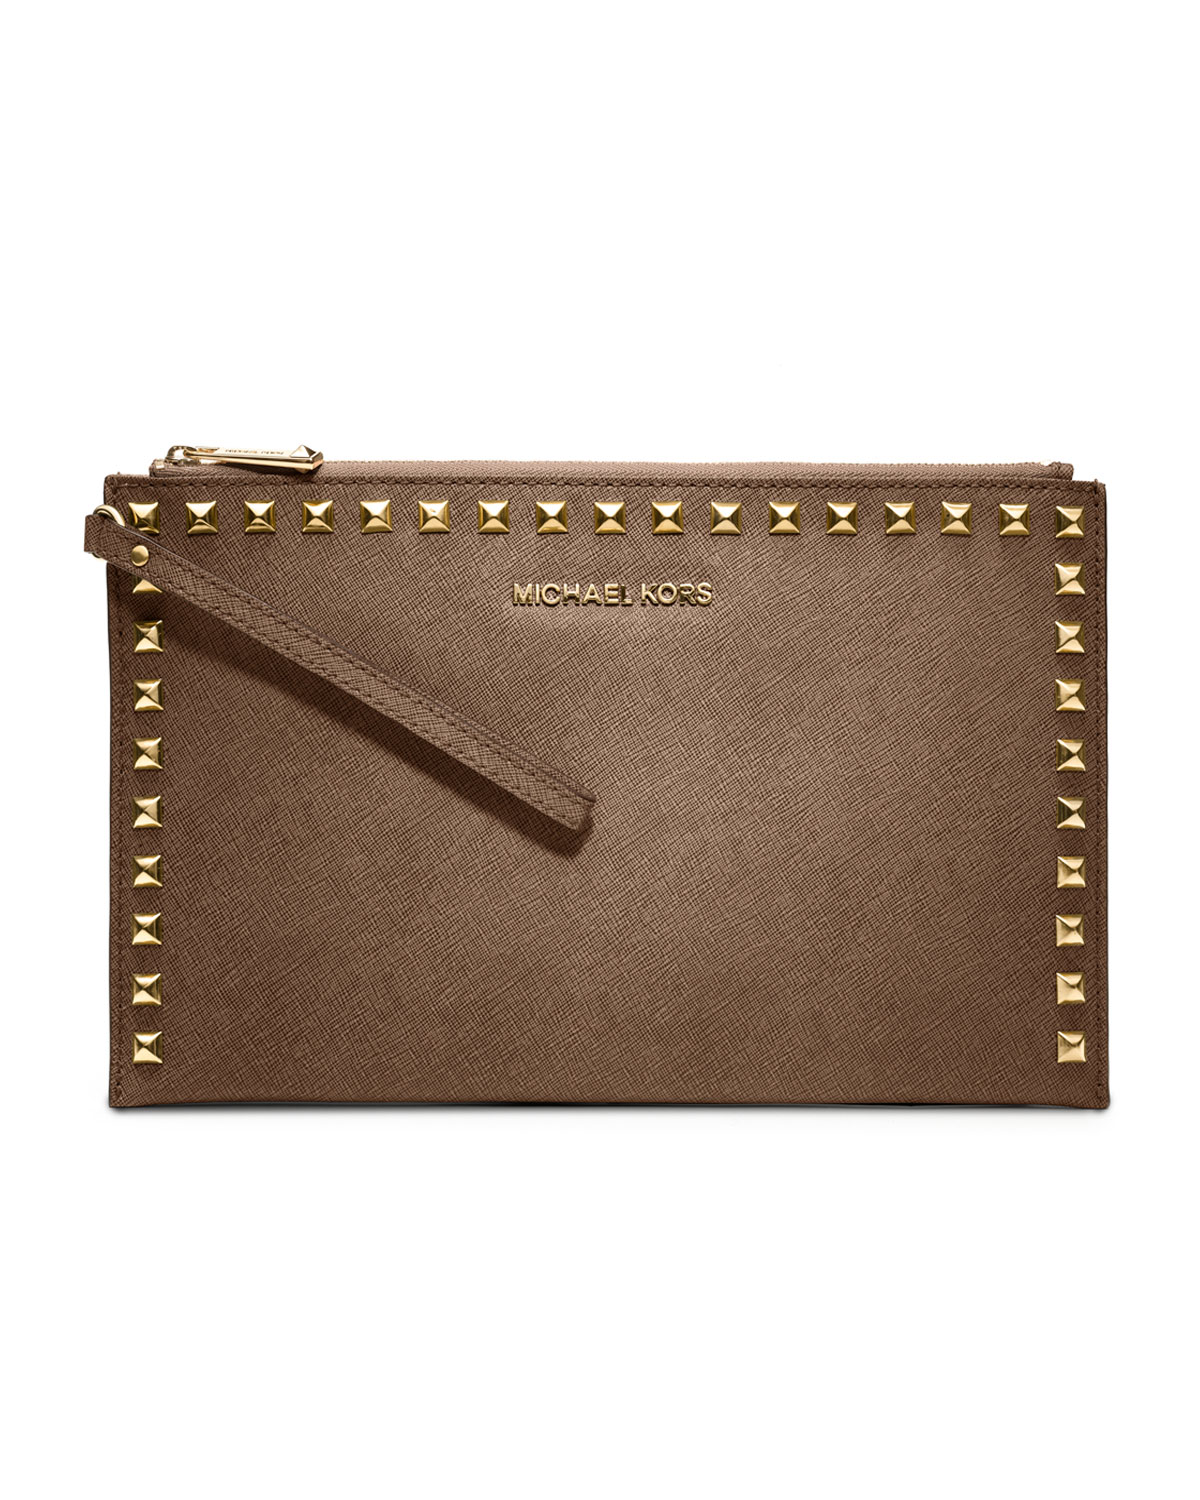 michael by michael kors large selma studded saffiano clutch in khaki lyst. Black Bedroom Furniture Sets. Home Design Ideas